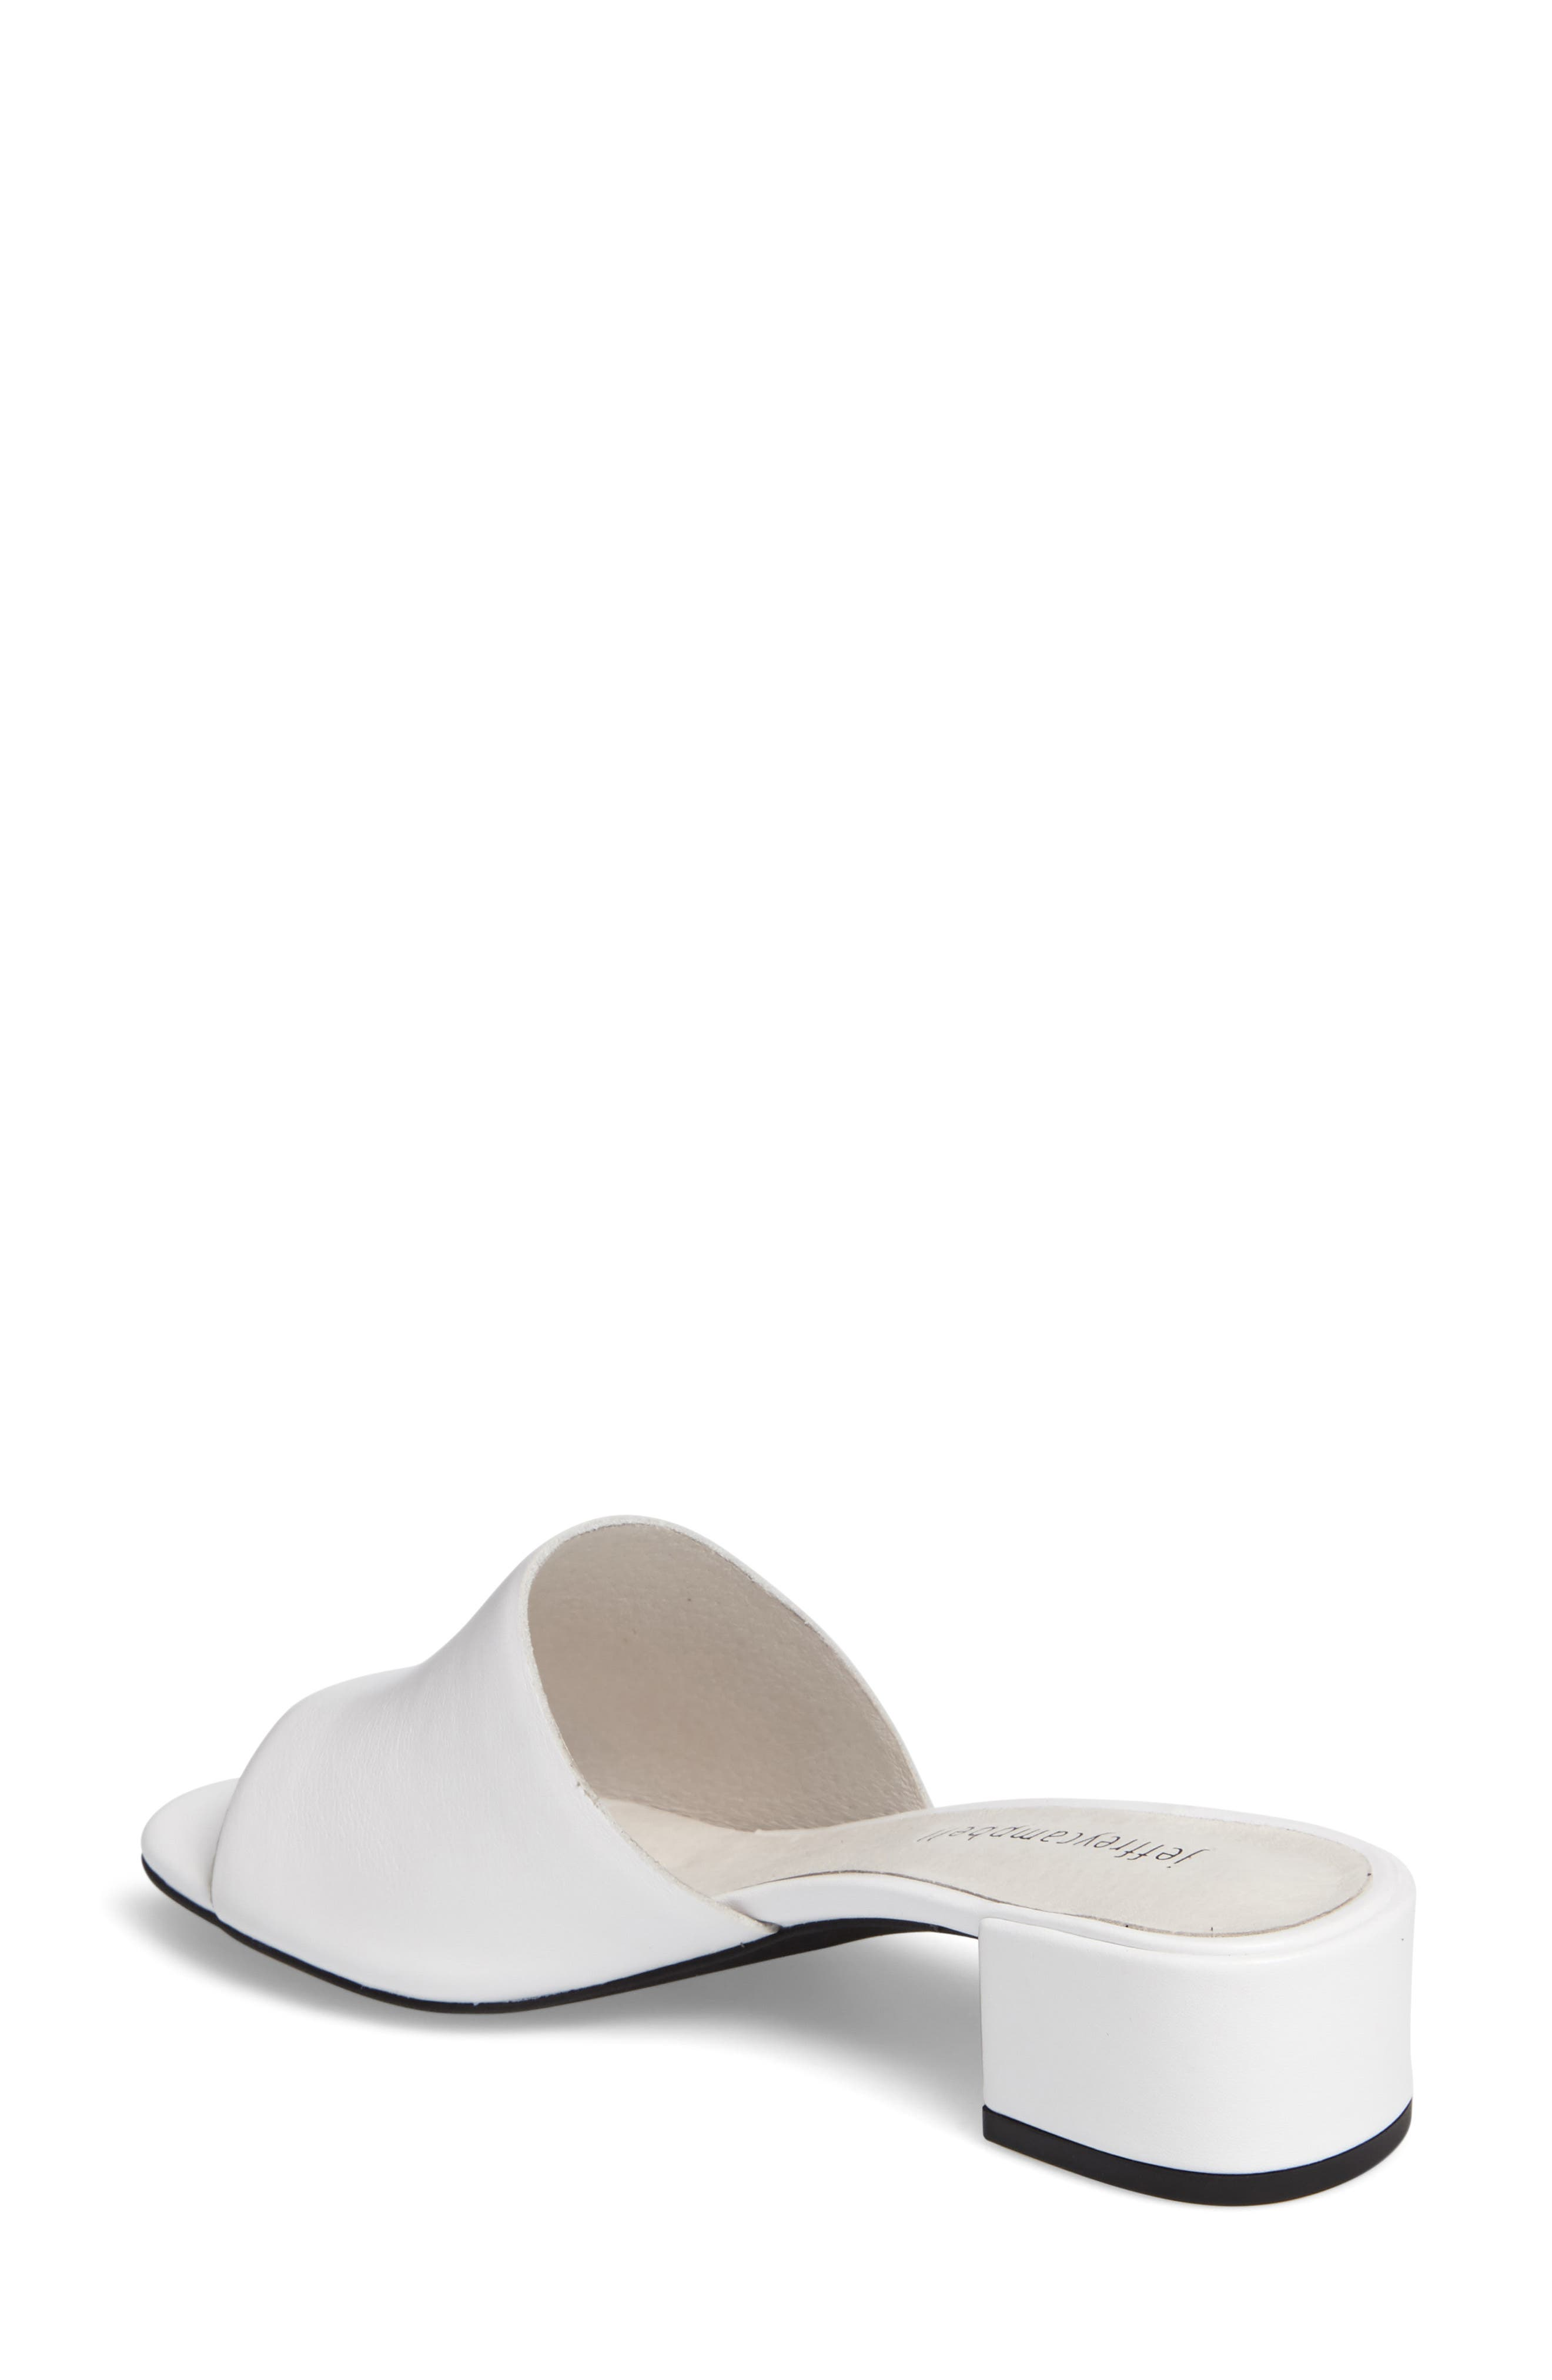 'Beaton' Slide Sandal,                             Alternate thumbnail 15, color,